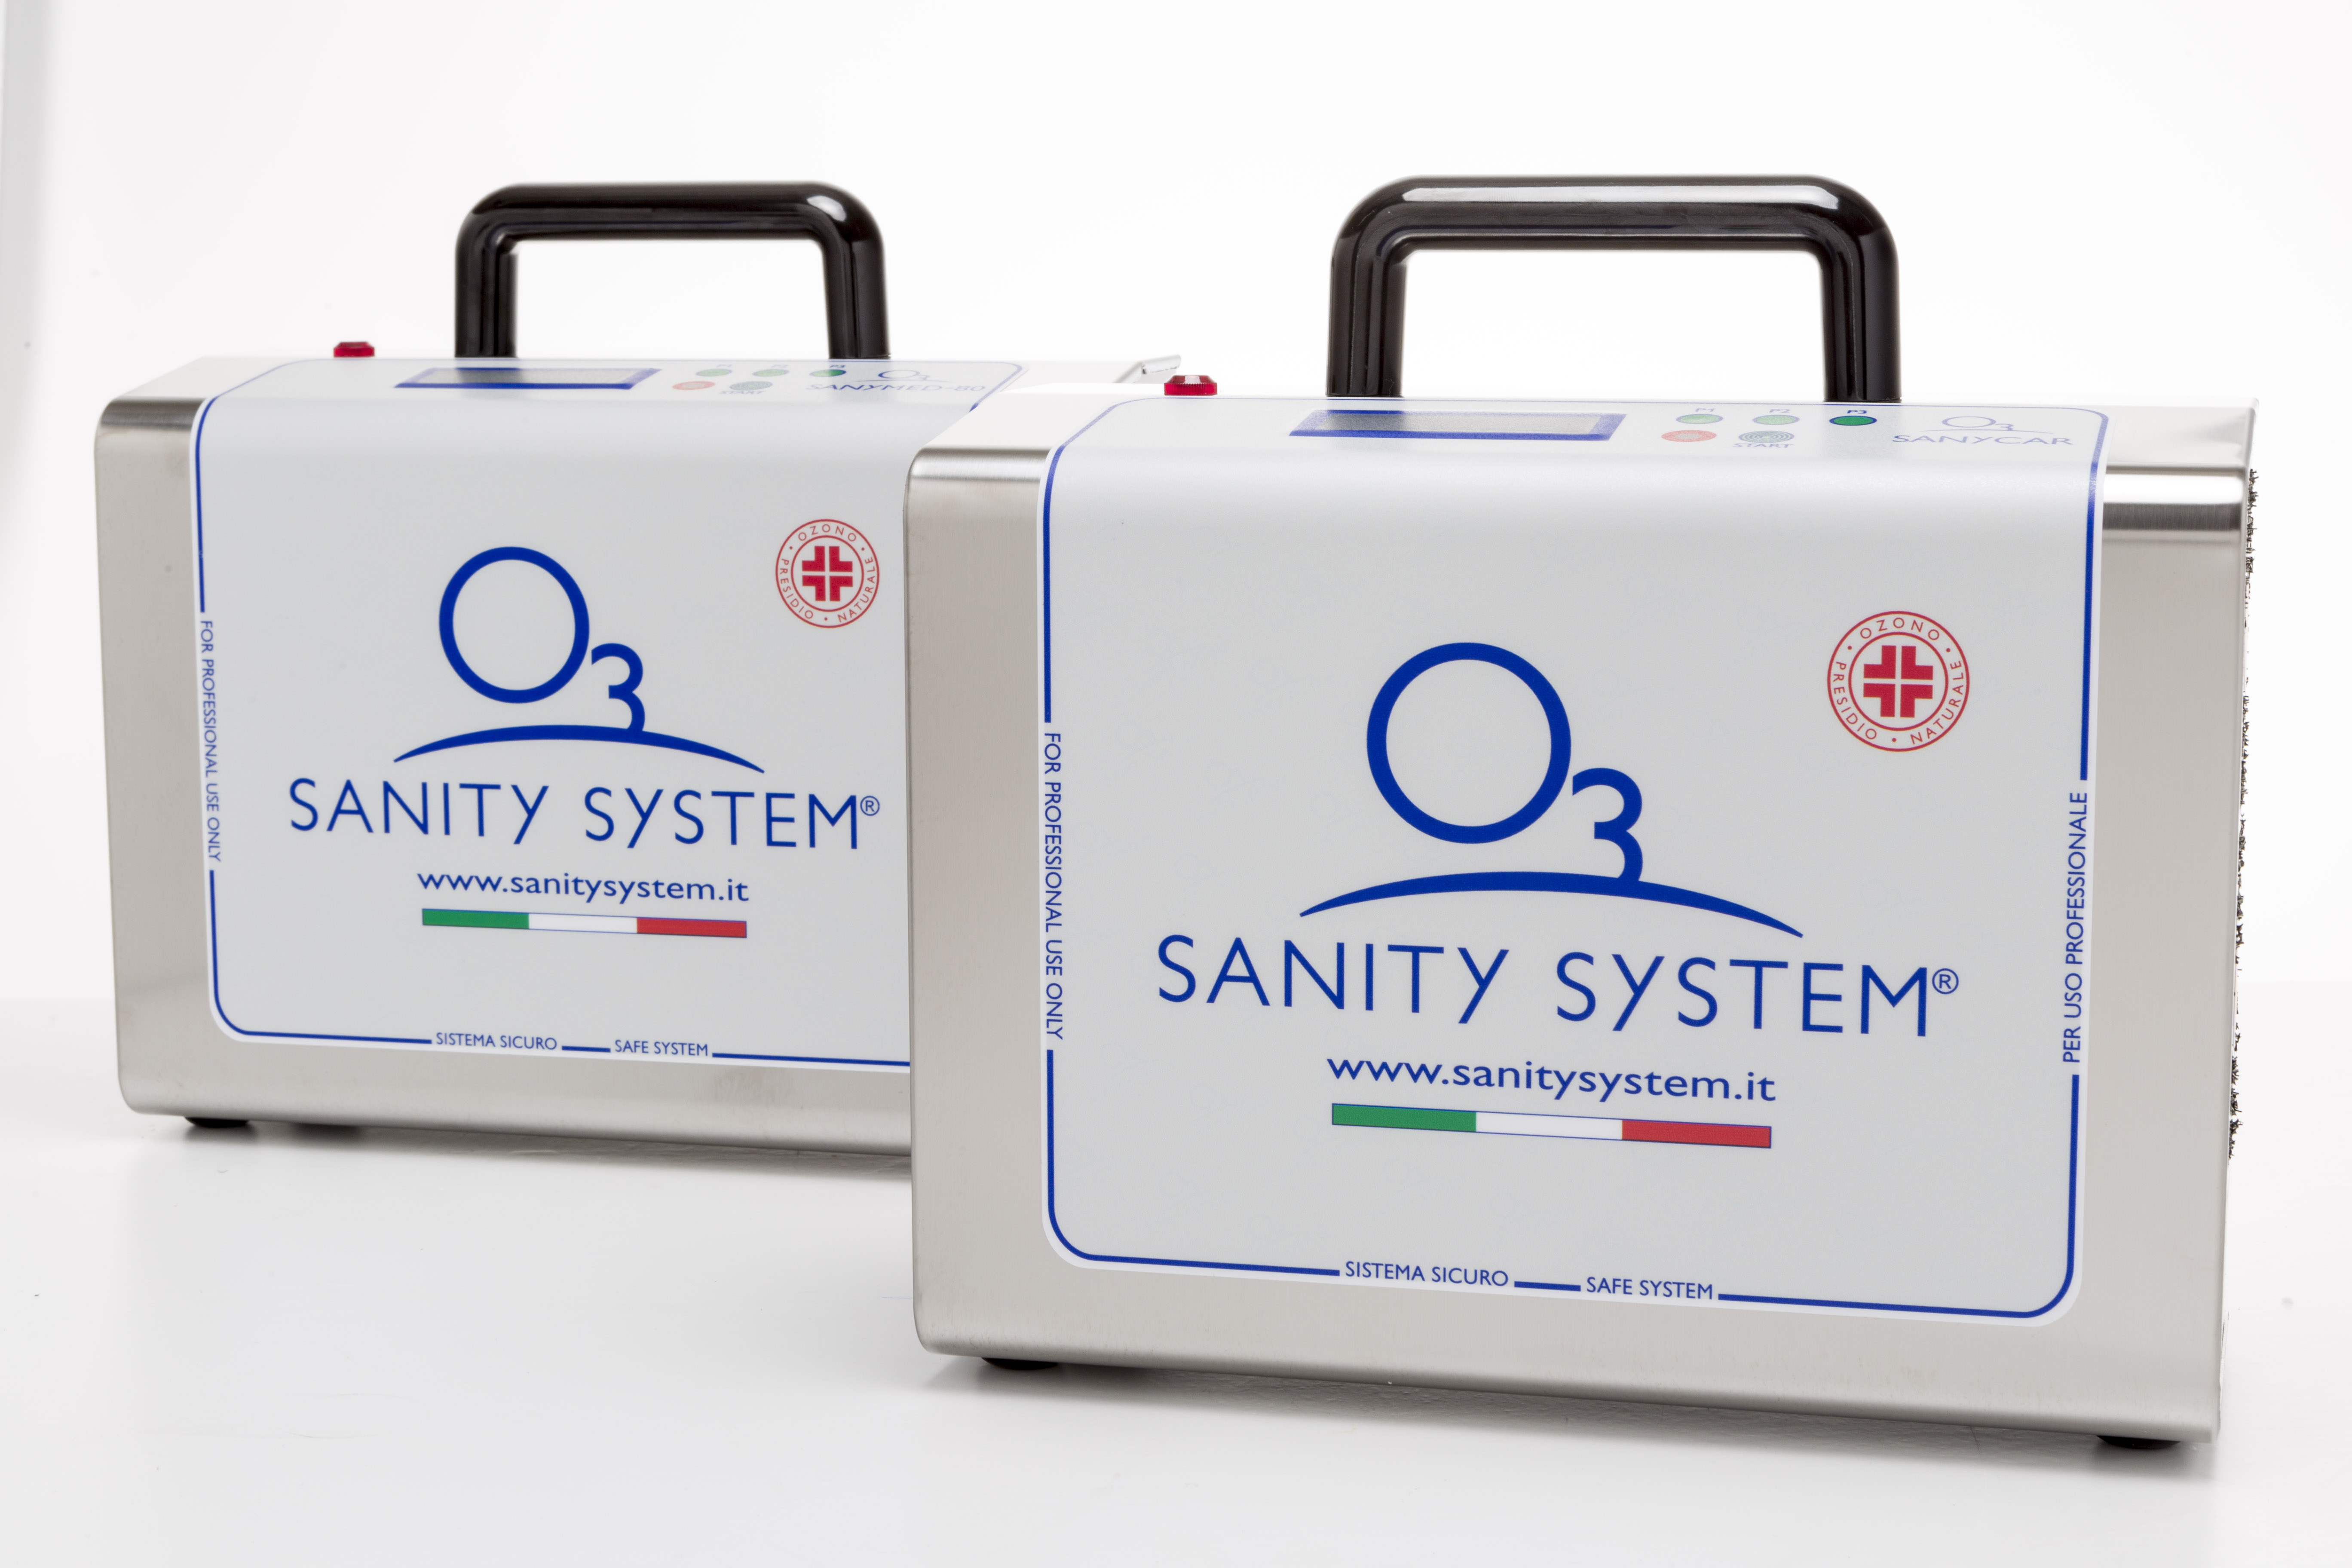 Research Study certifies Sanity System device with ozone technology  as an effective weapon against Covid-19.